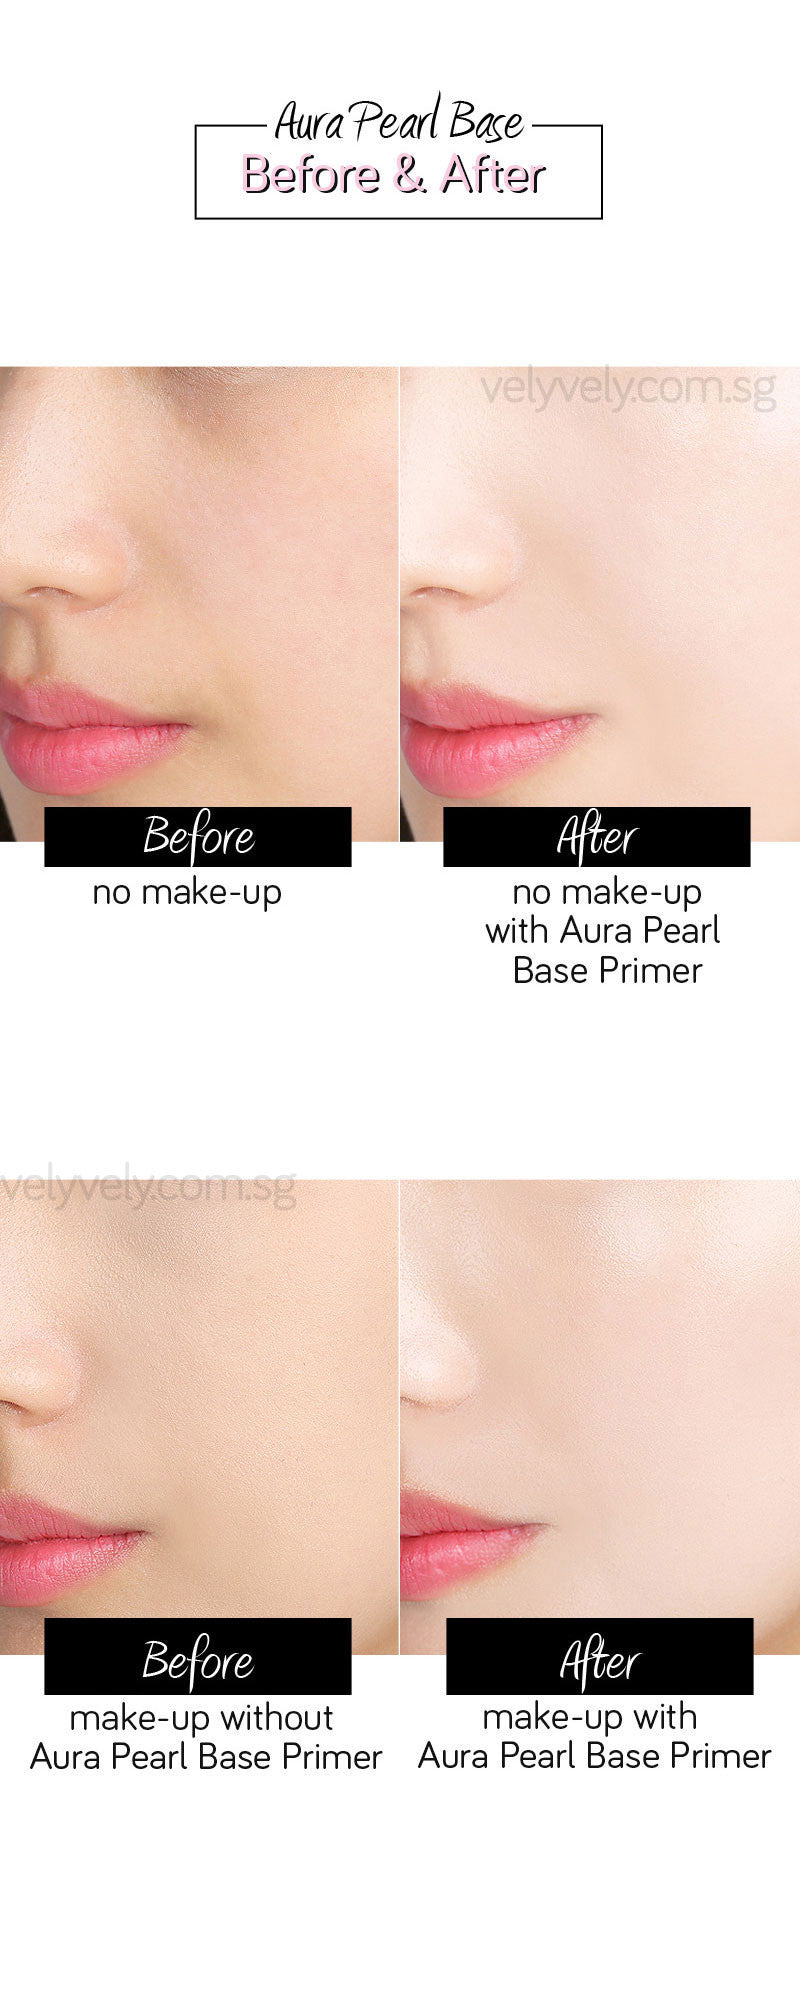 With and without comparison using the Aura Pearl Base Primer